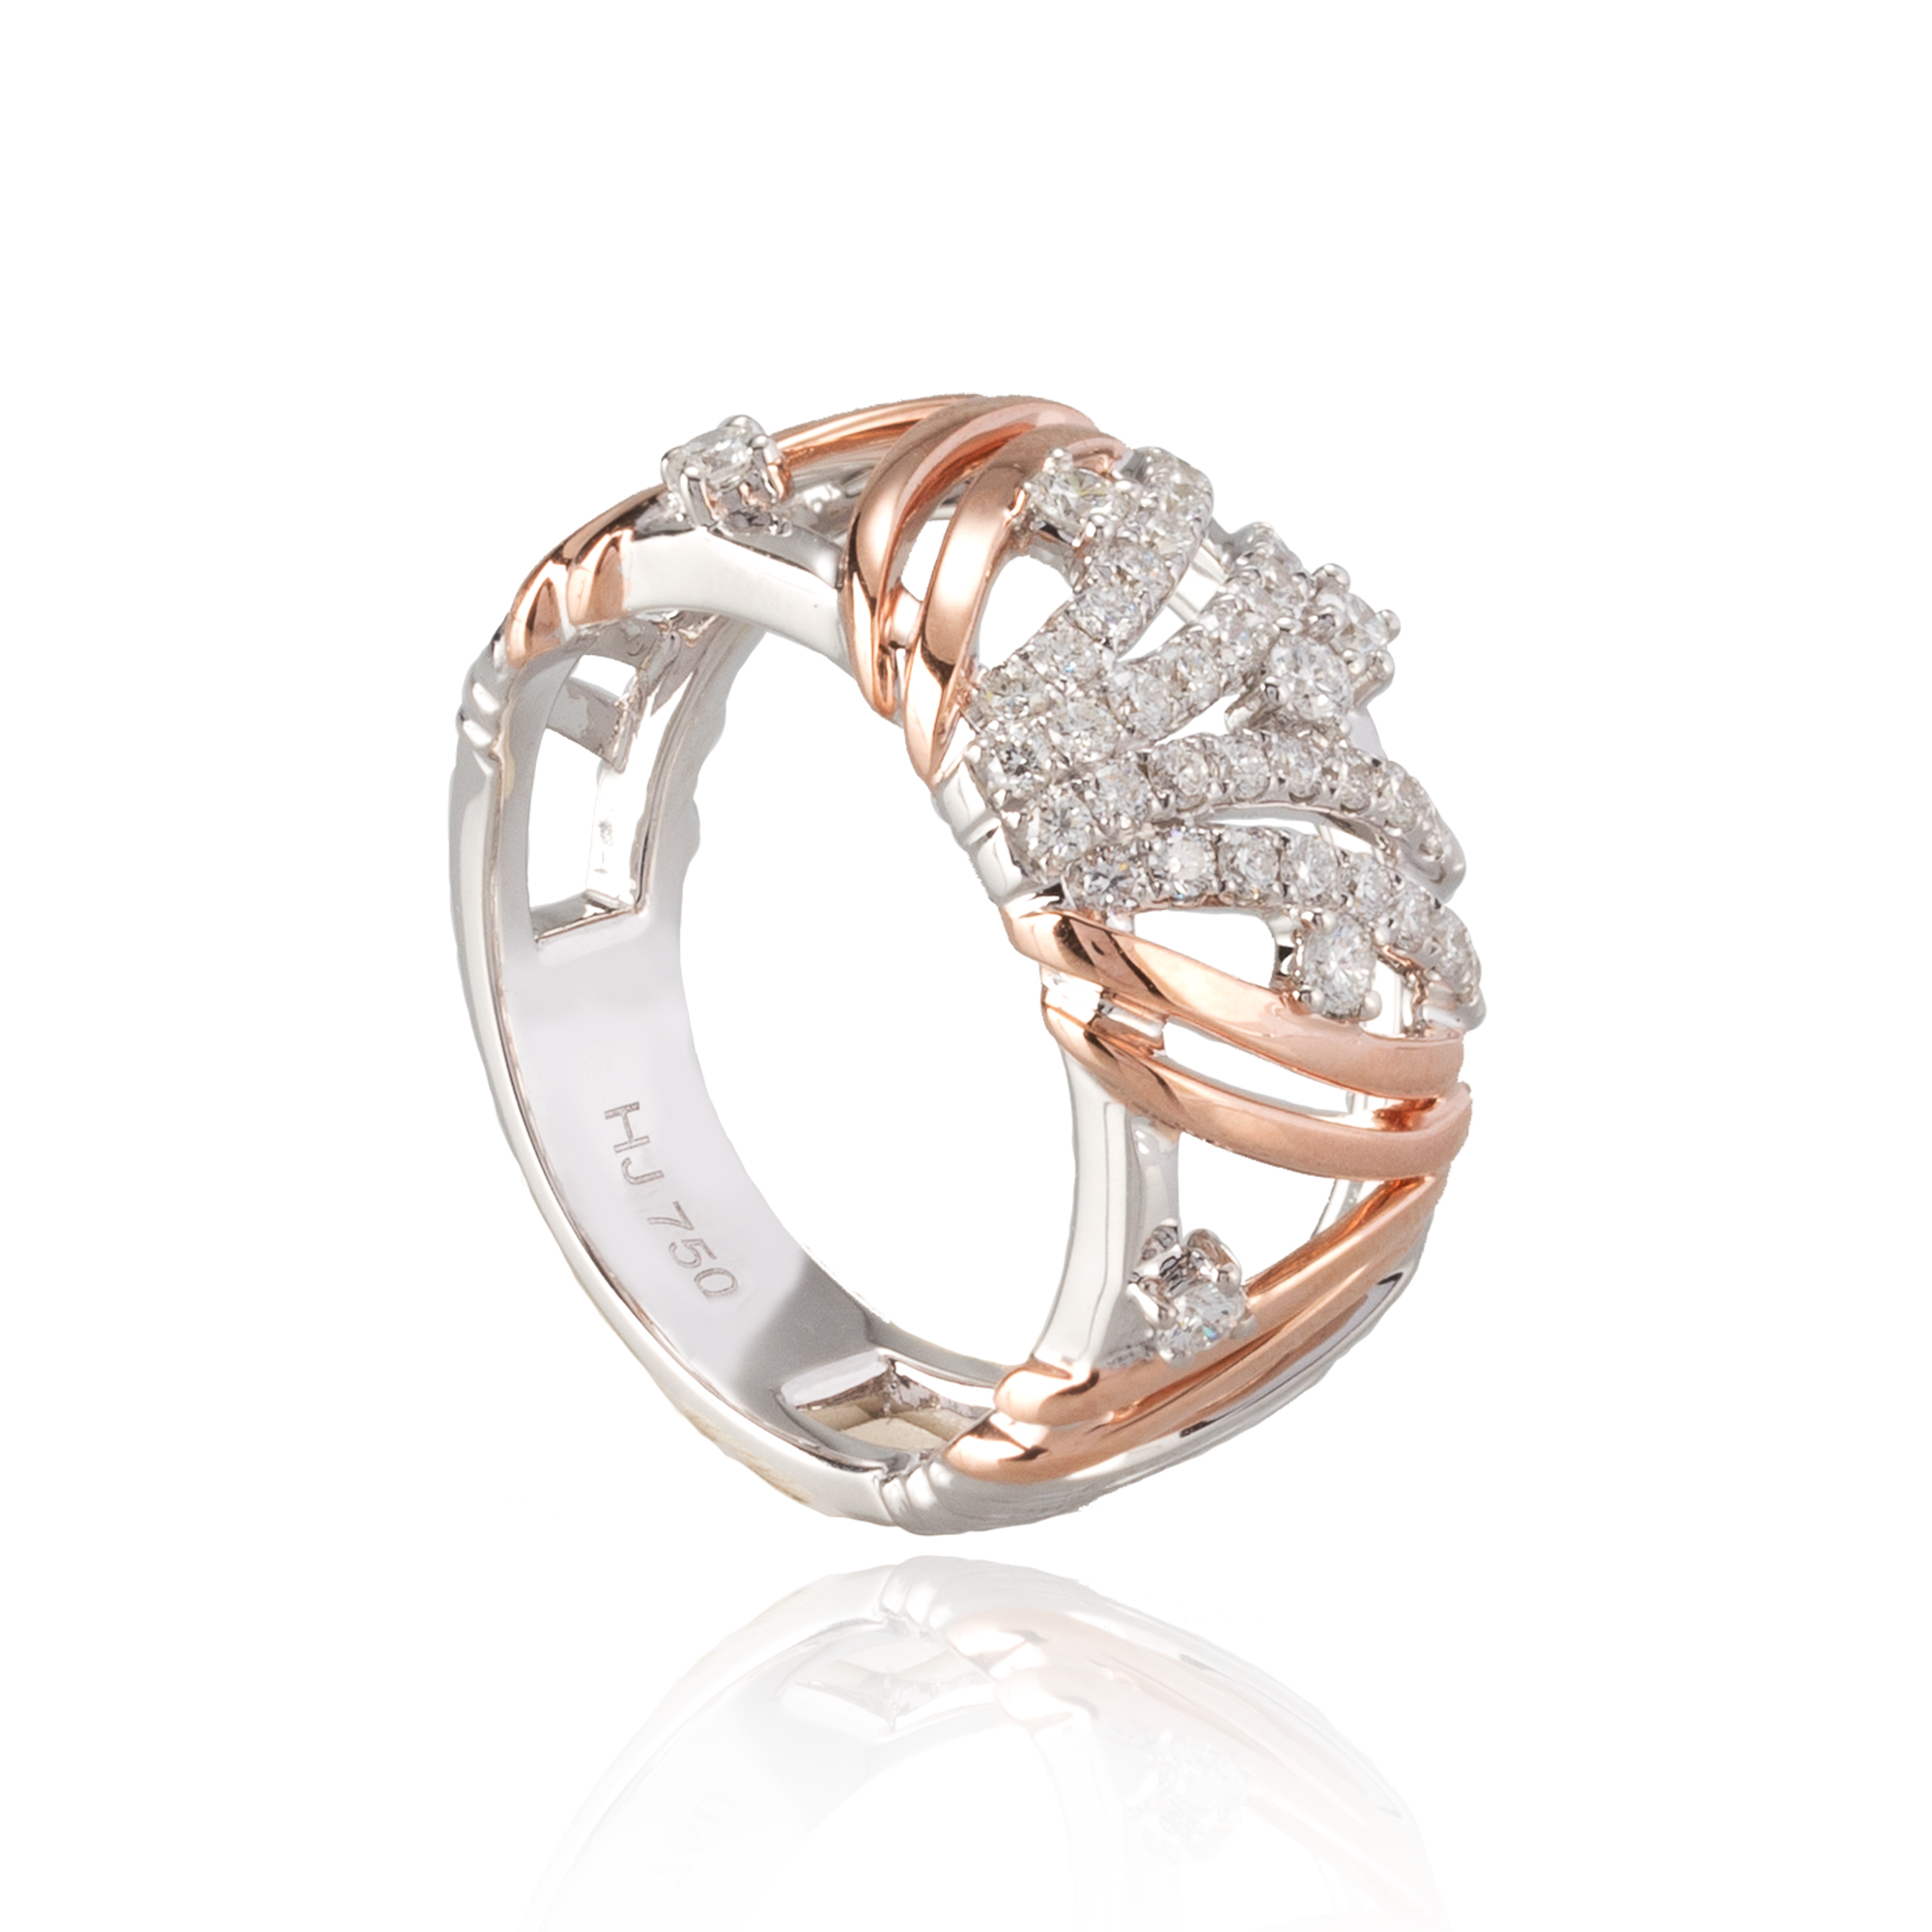 place love buy surrounding best rings the county story in orange to antique engagement areas